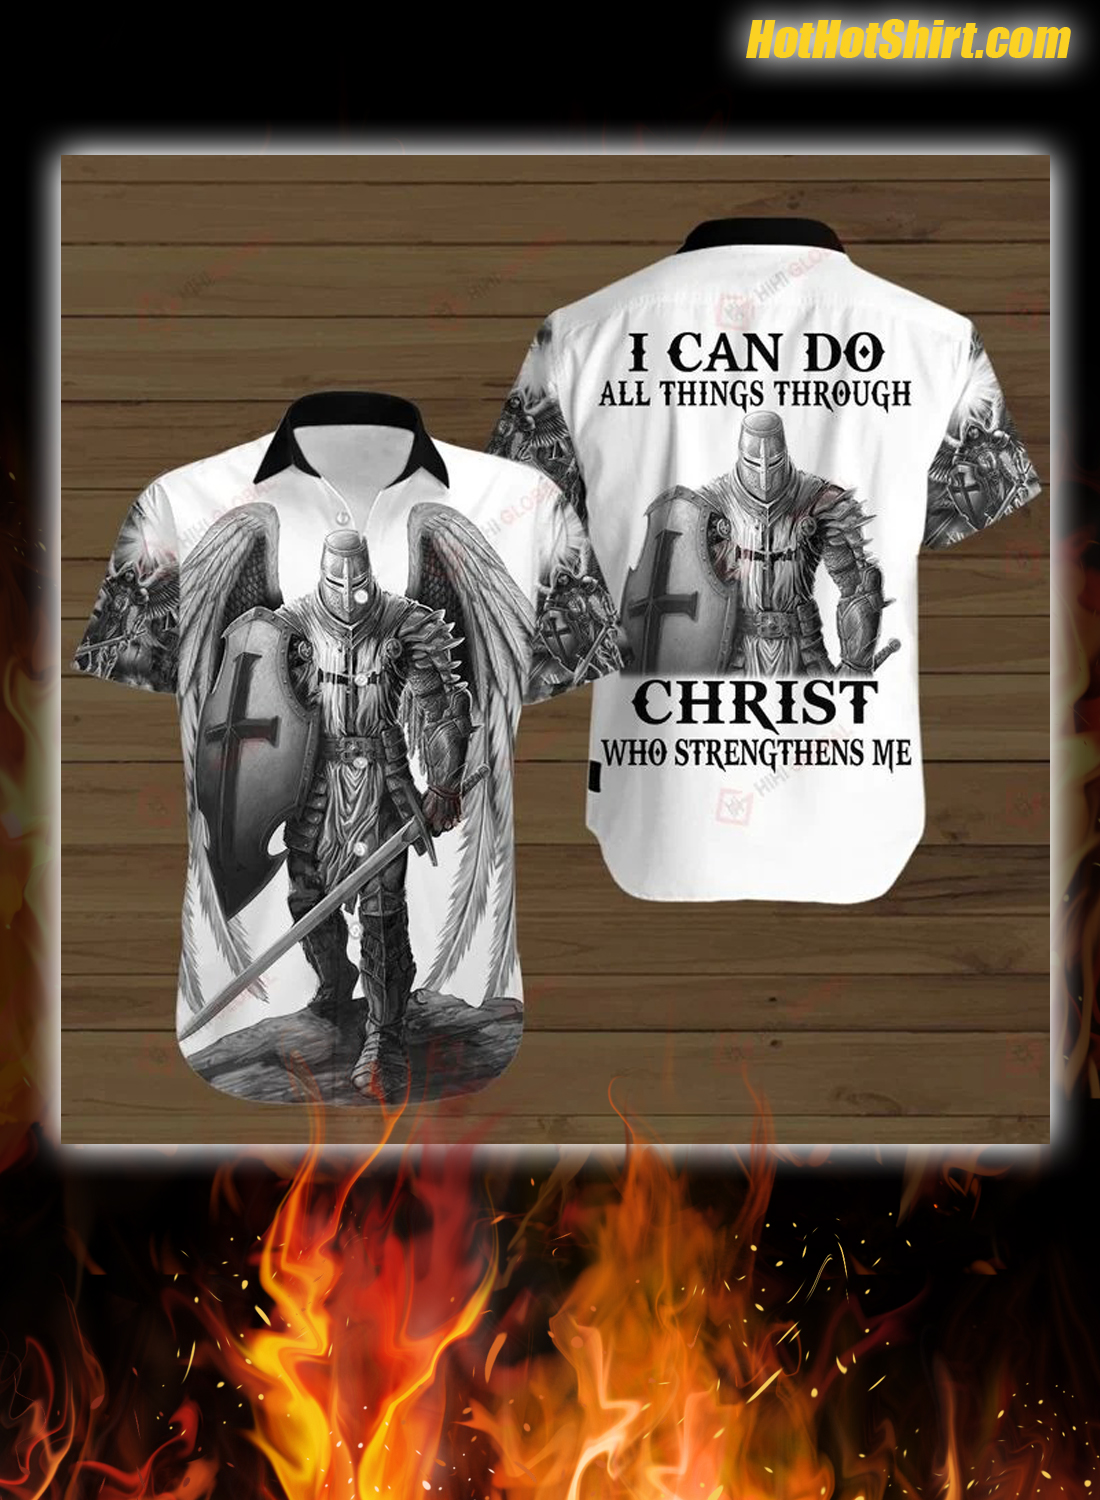 Knights Templar I Can Do All Things Through Christ Who Strengthens Me 3D Hoodie and Shirt 2